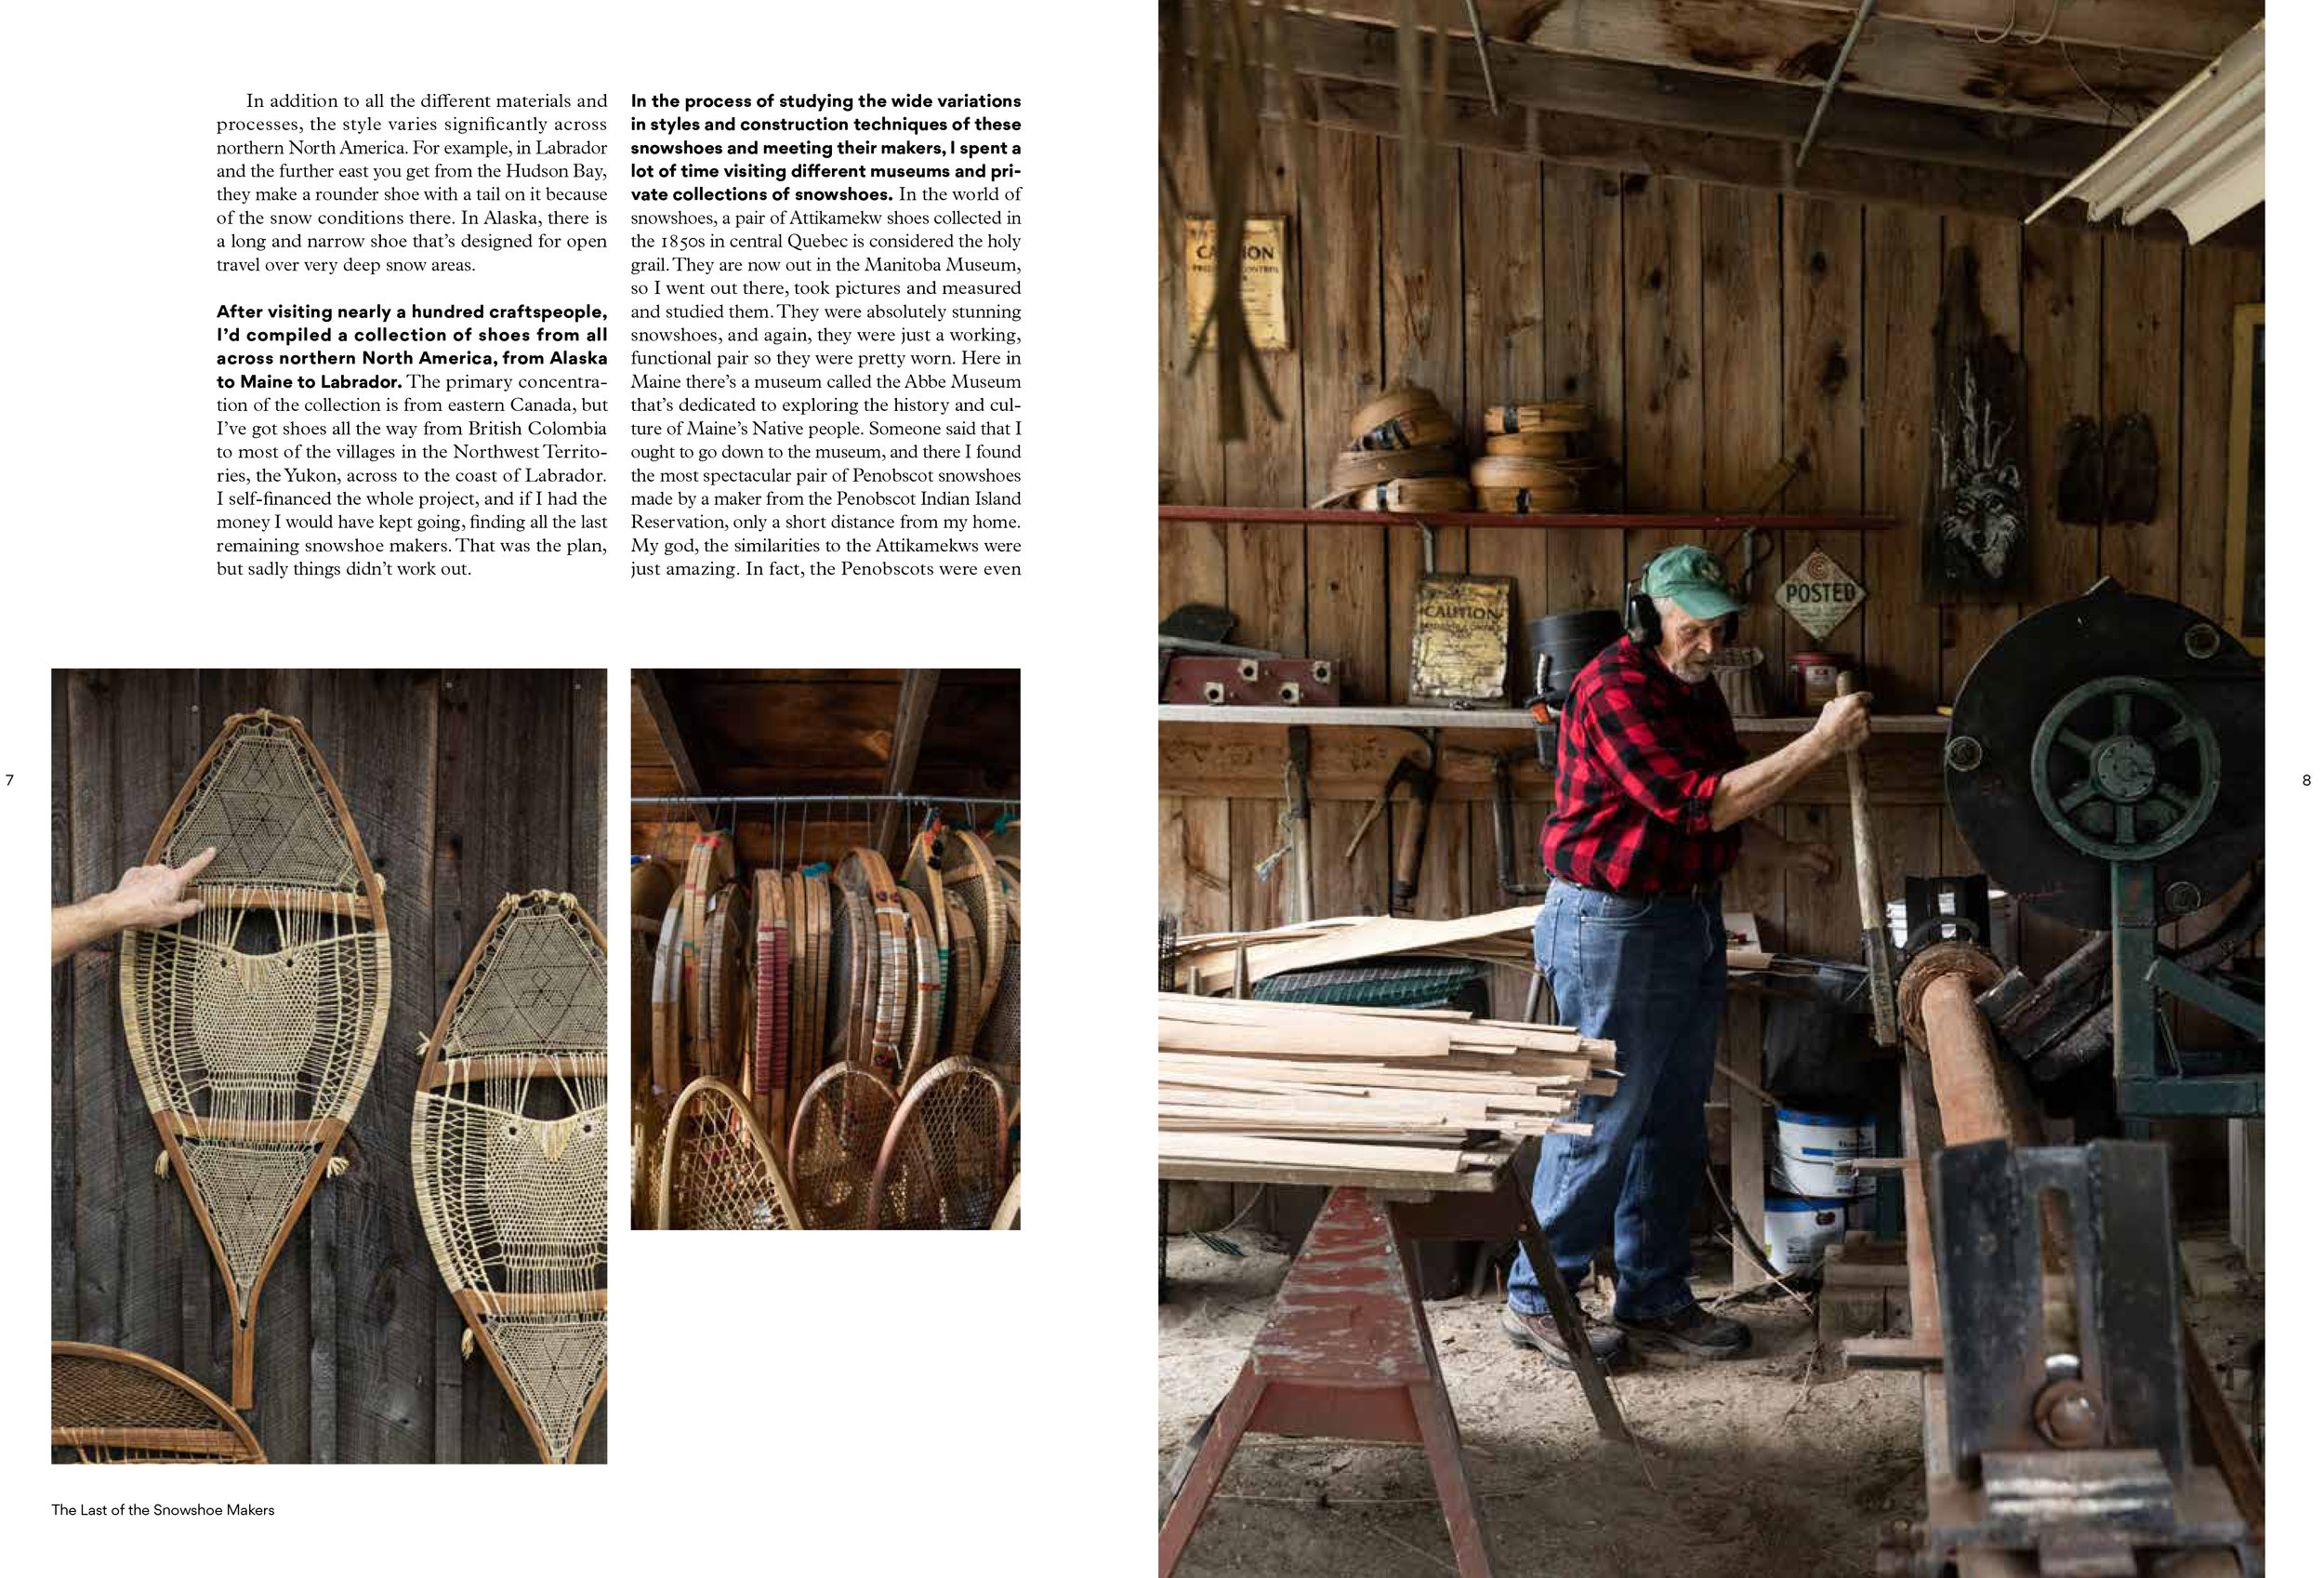 The Last of the Snowshoe Makers-4.jpg